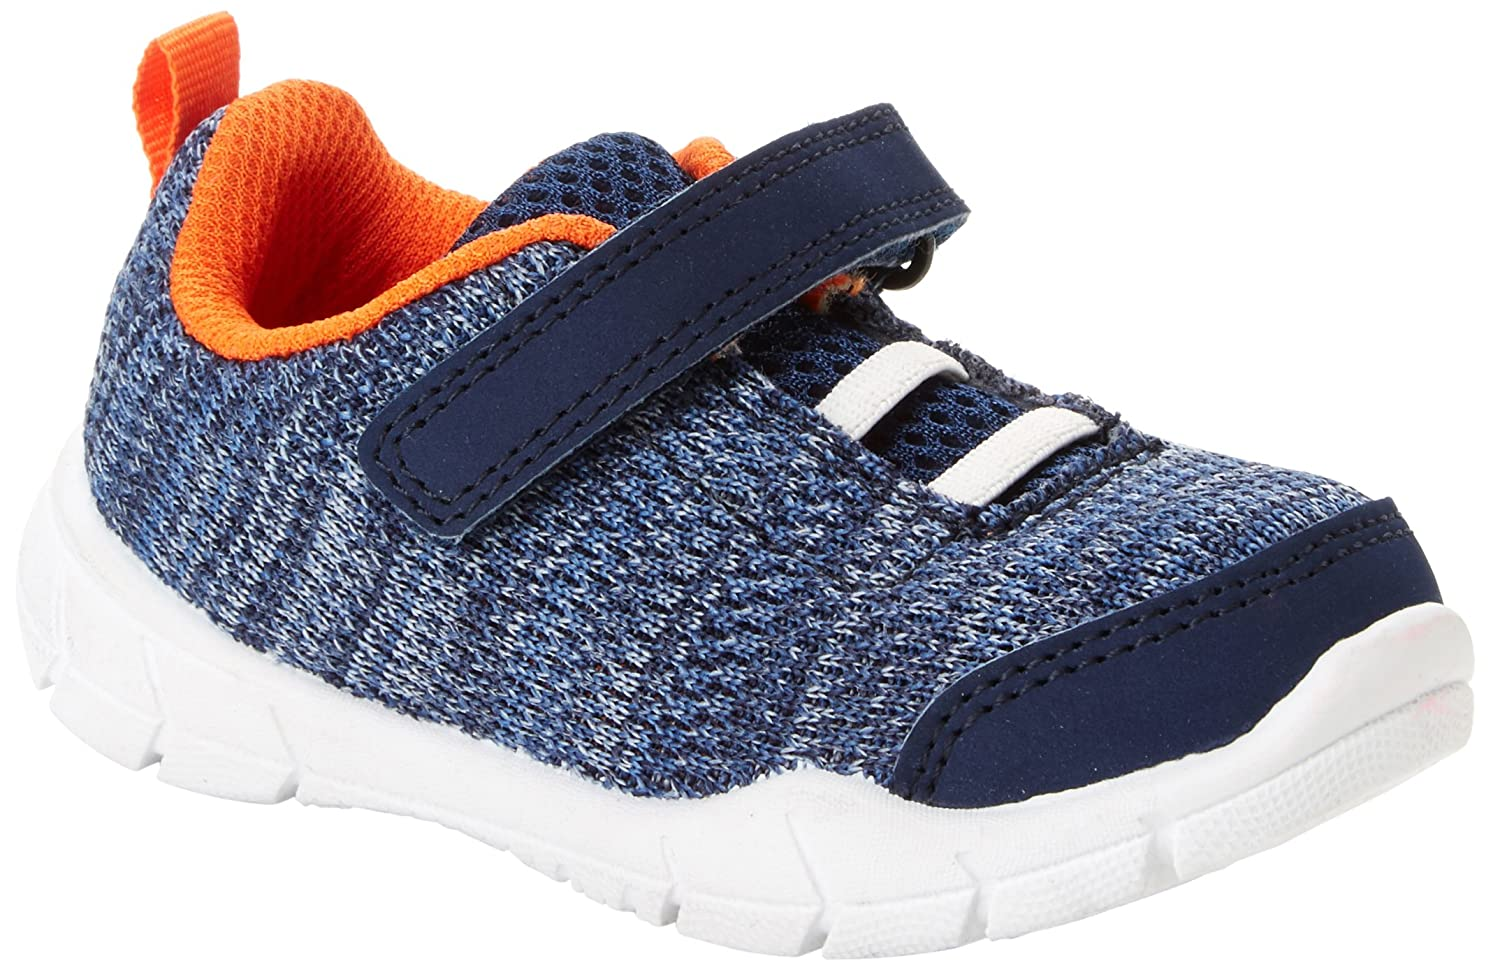 Simple Joys by Carter's Kids' Knitted Unisex Athletic Sneaker (Slip-on Shoe with Velcro Straps) Simple Joys by Carter's JODYNN-BJR